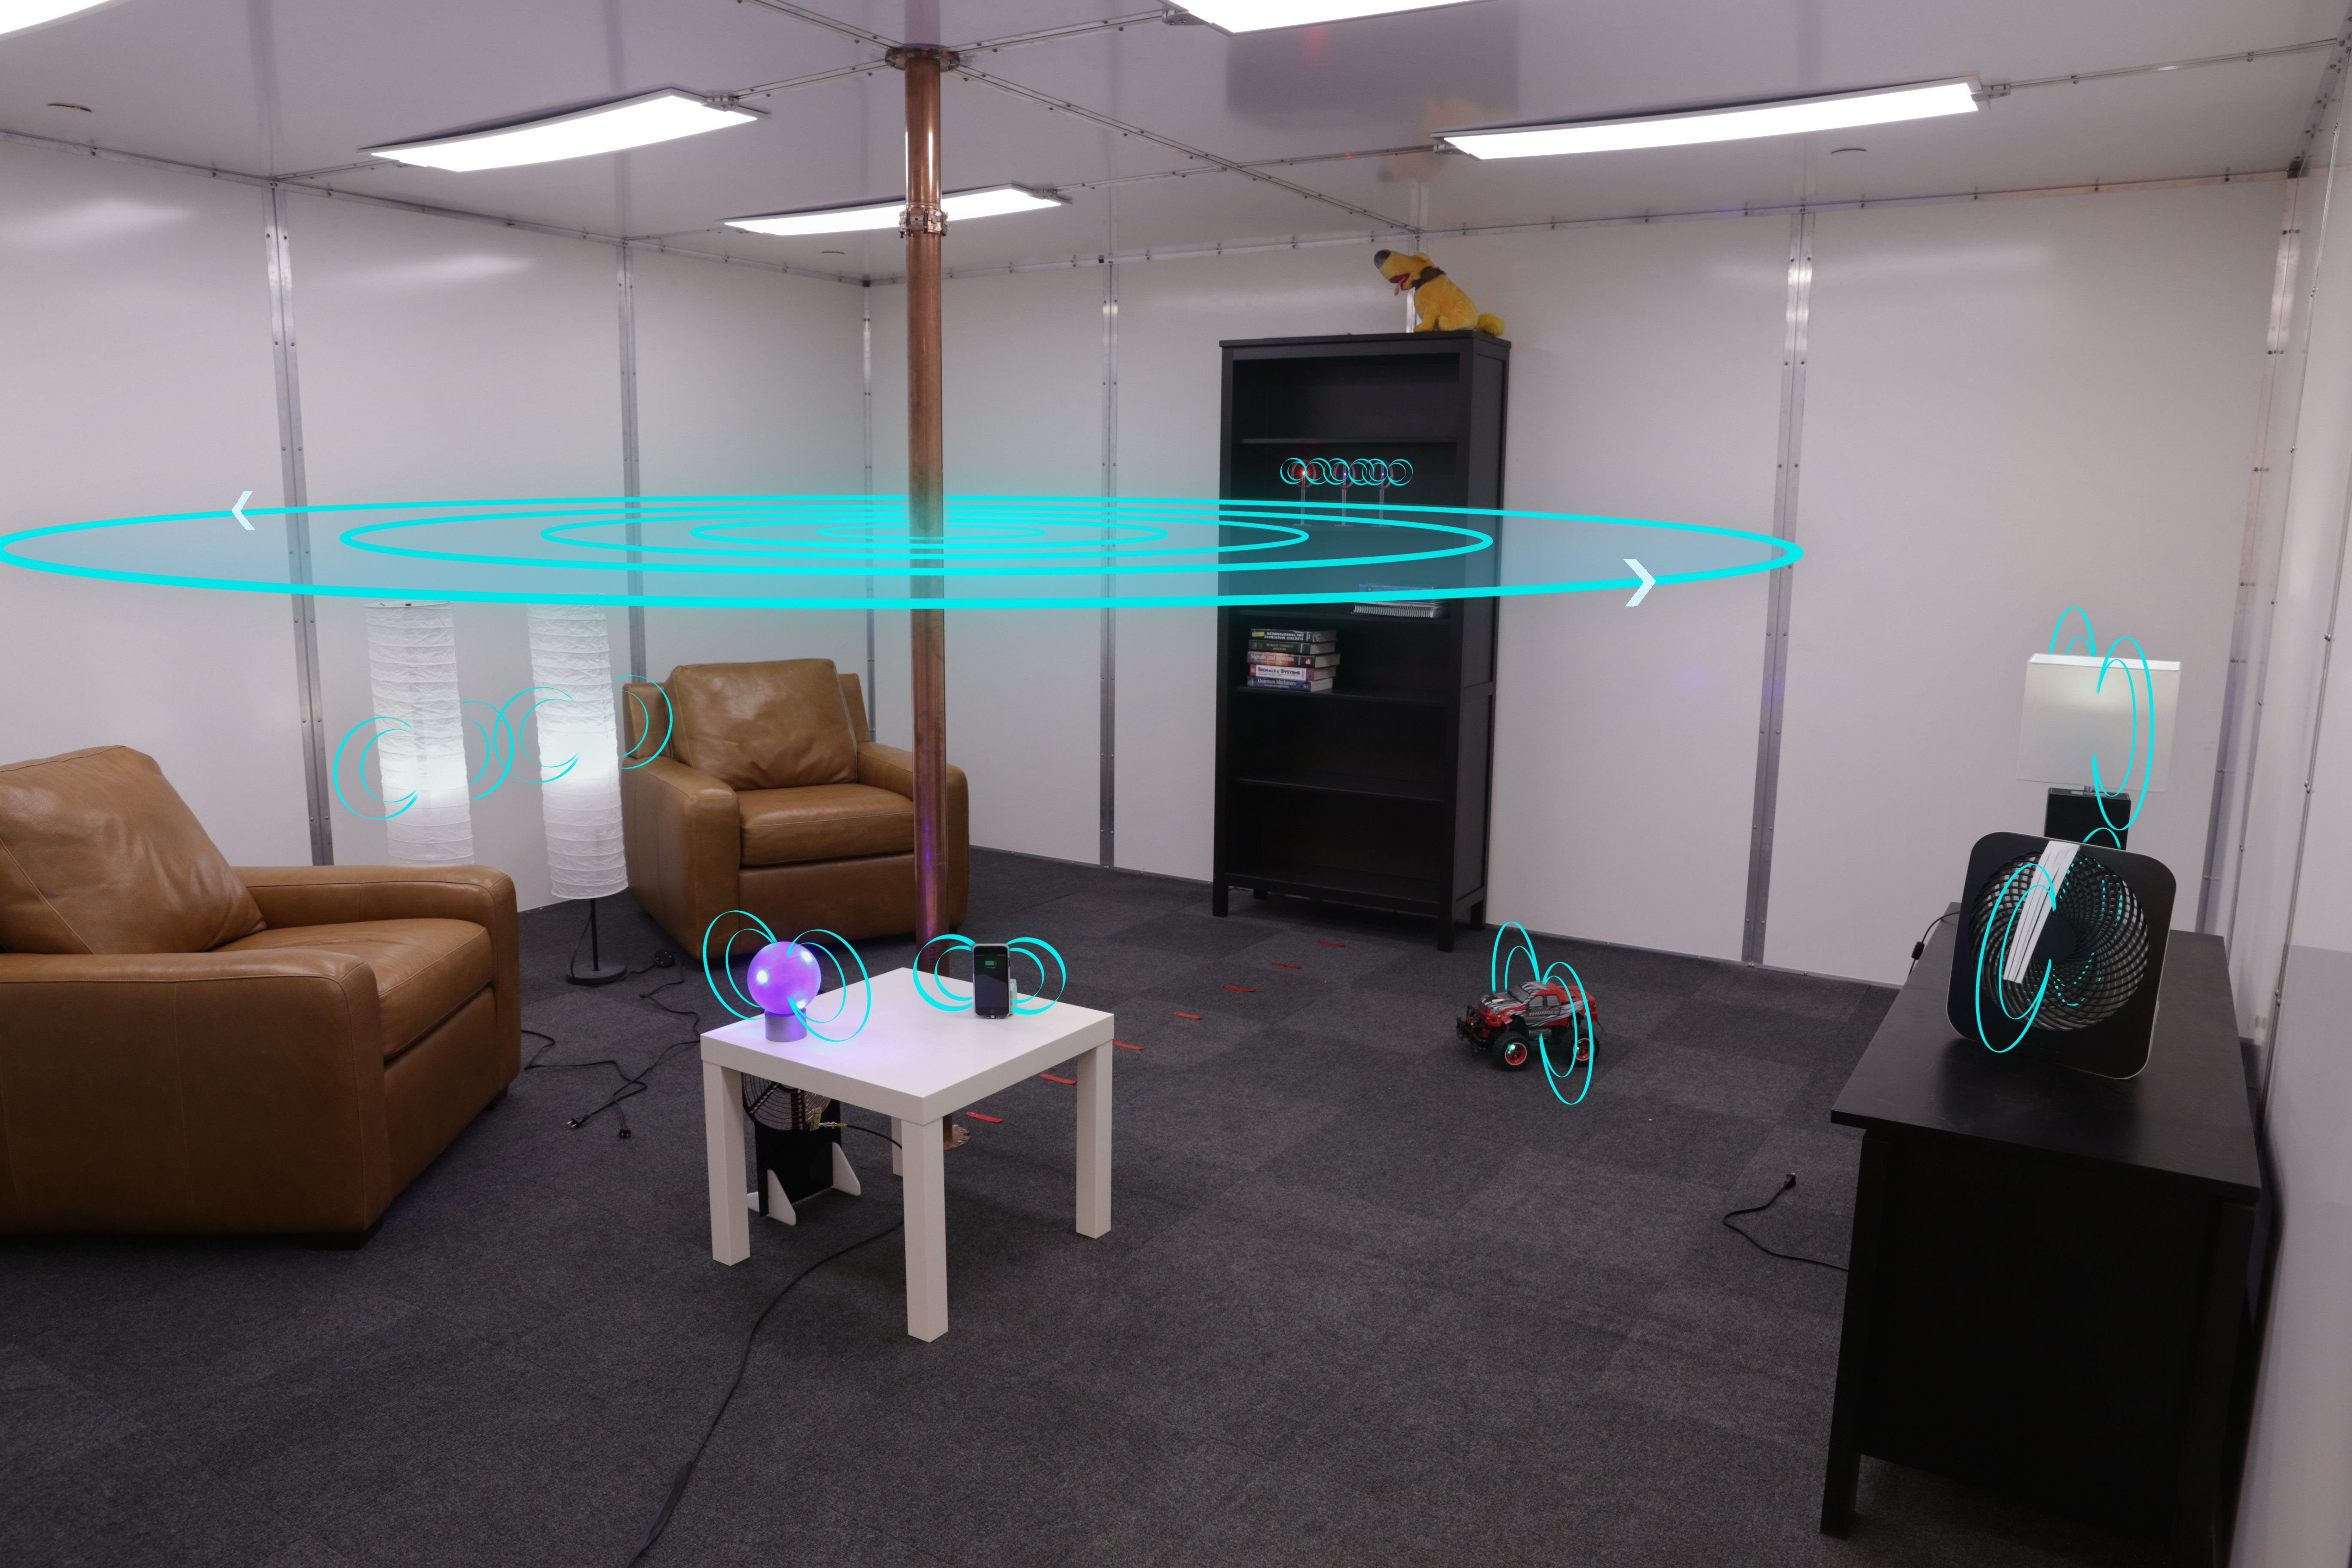 Power delivery system enables wireless charging of any electronic device throughout a room. Credit: Disney Research